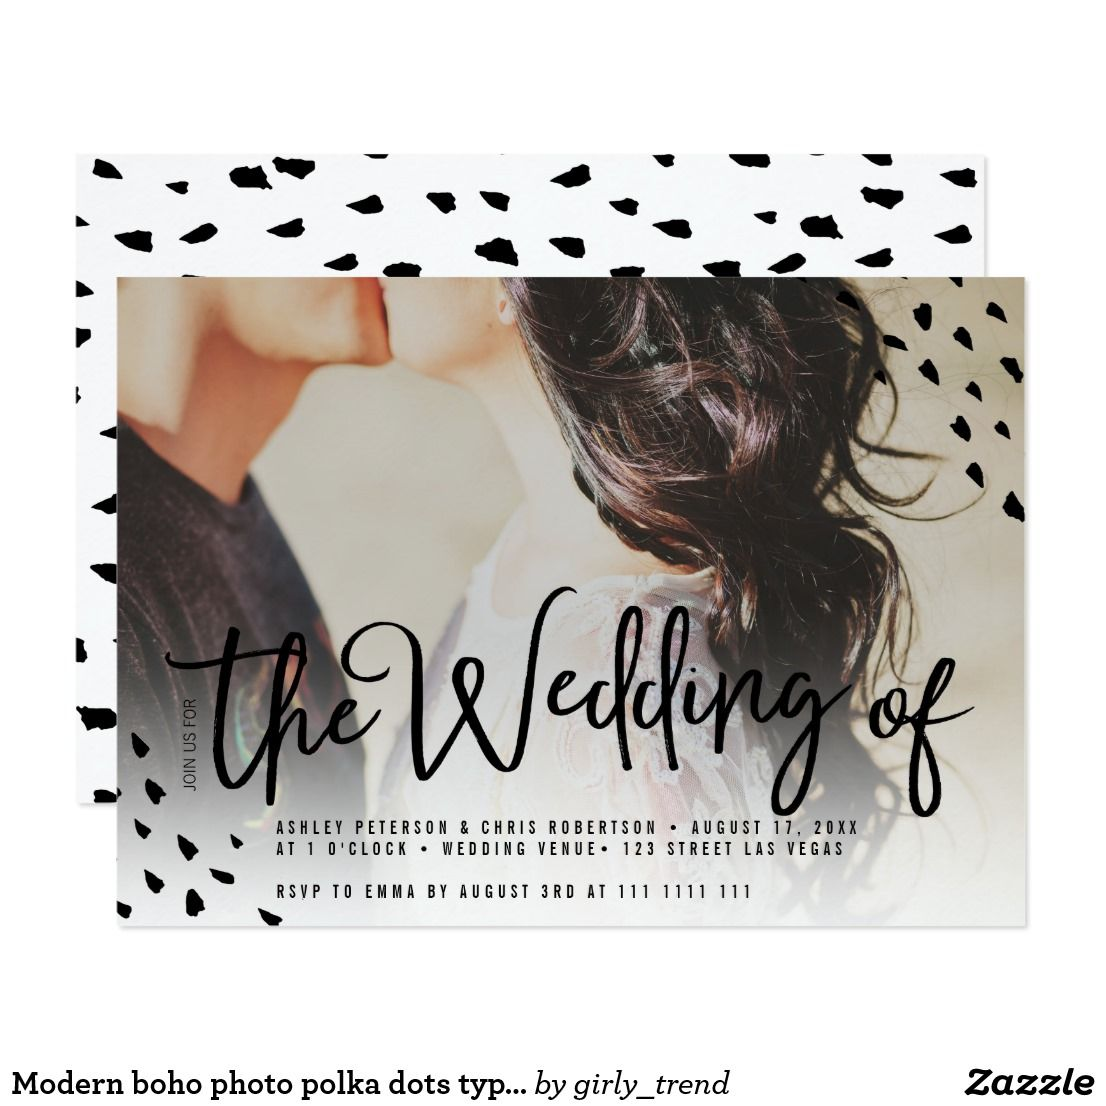 Modern boho photo polka dots typography wedding